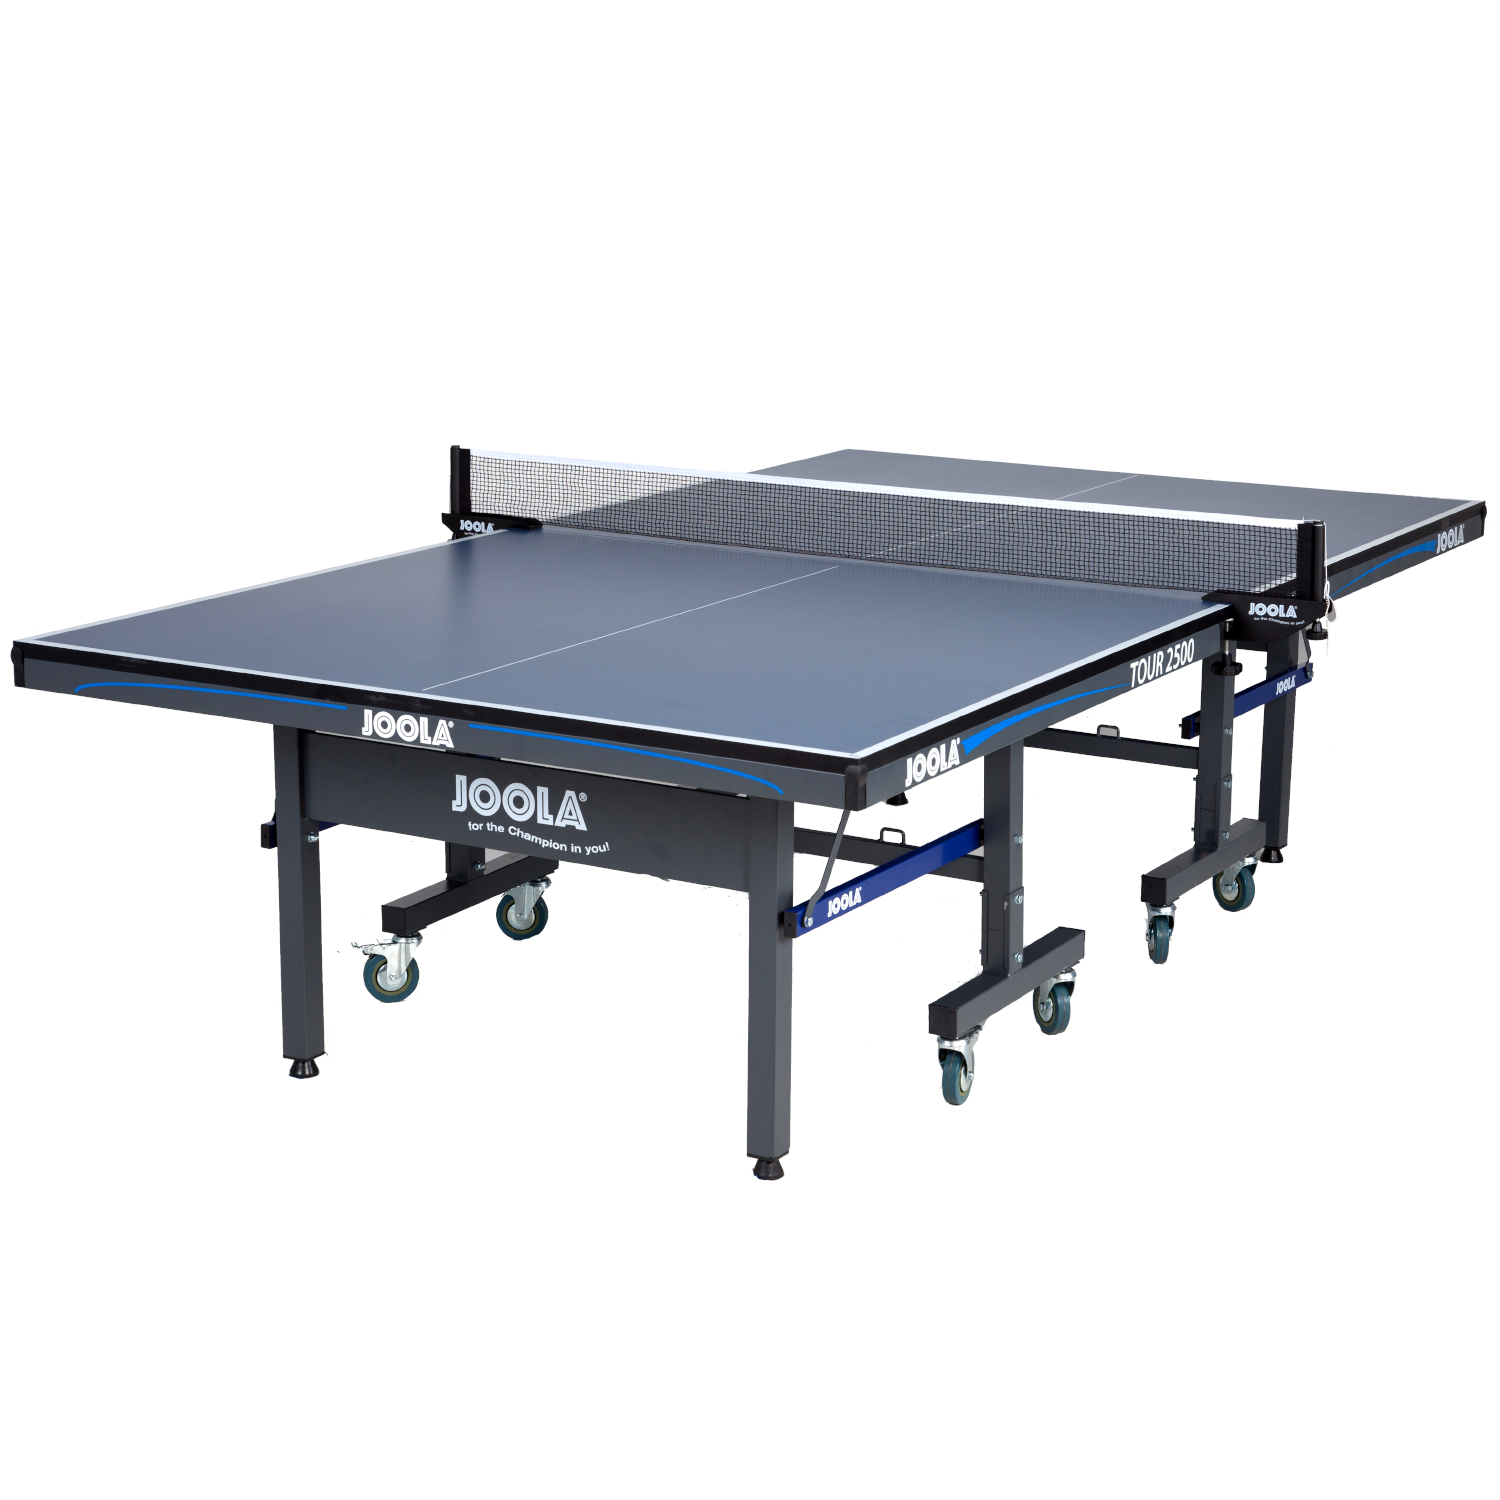 Joola Tour 2500 Indoor Table Tennis Table Table Tennis Equipment Ping Pong Table Tennis